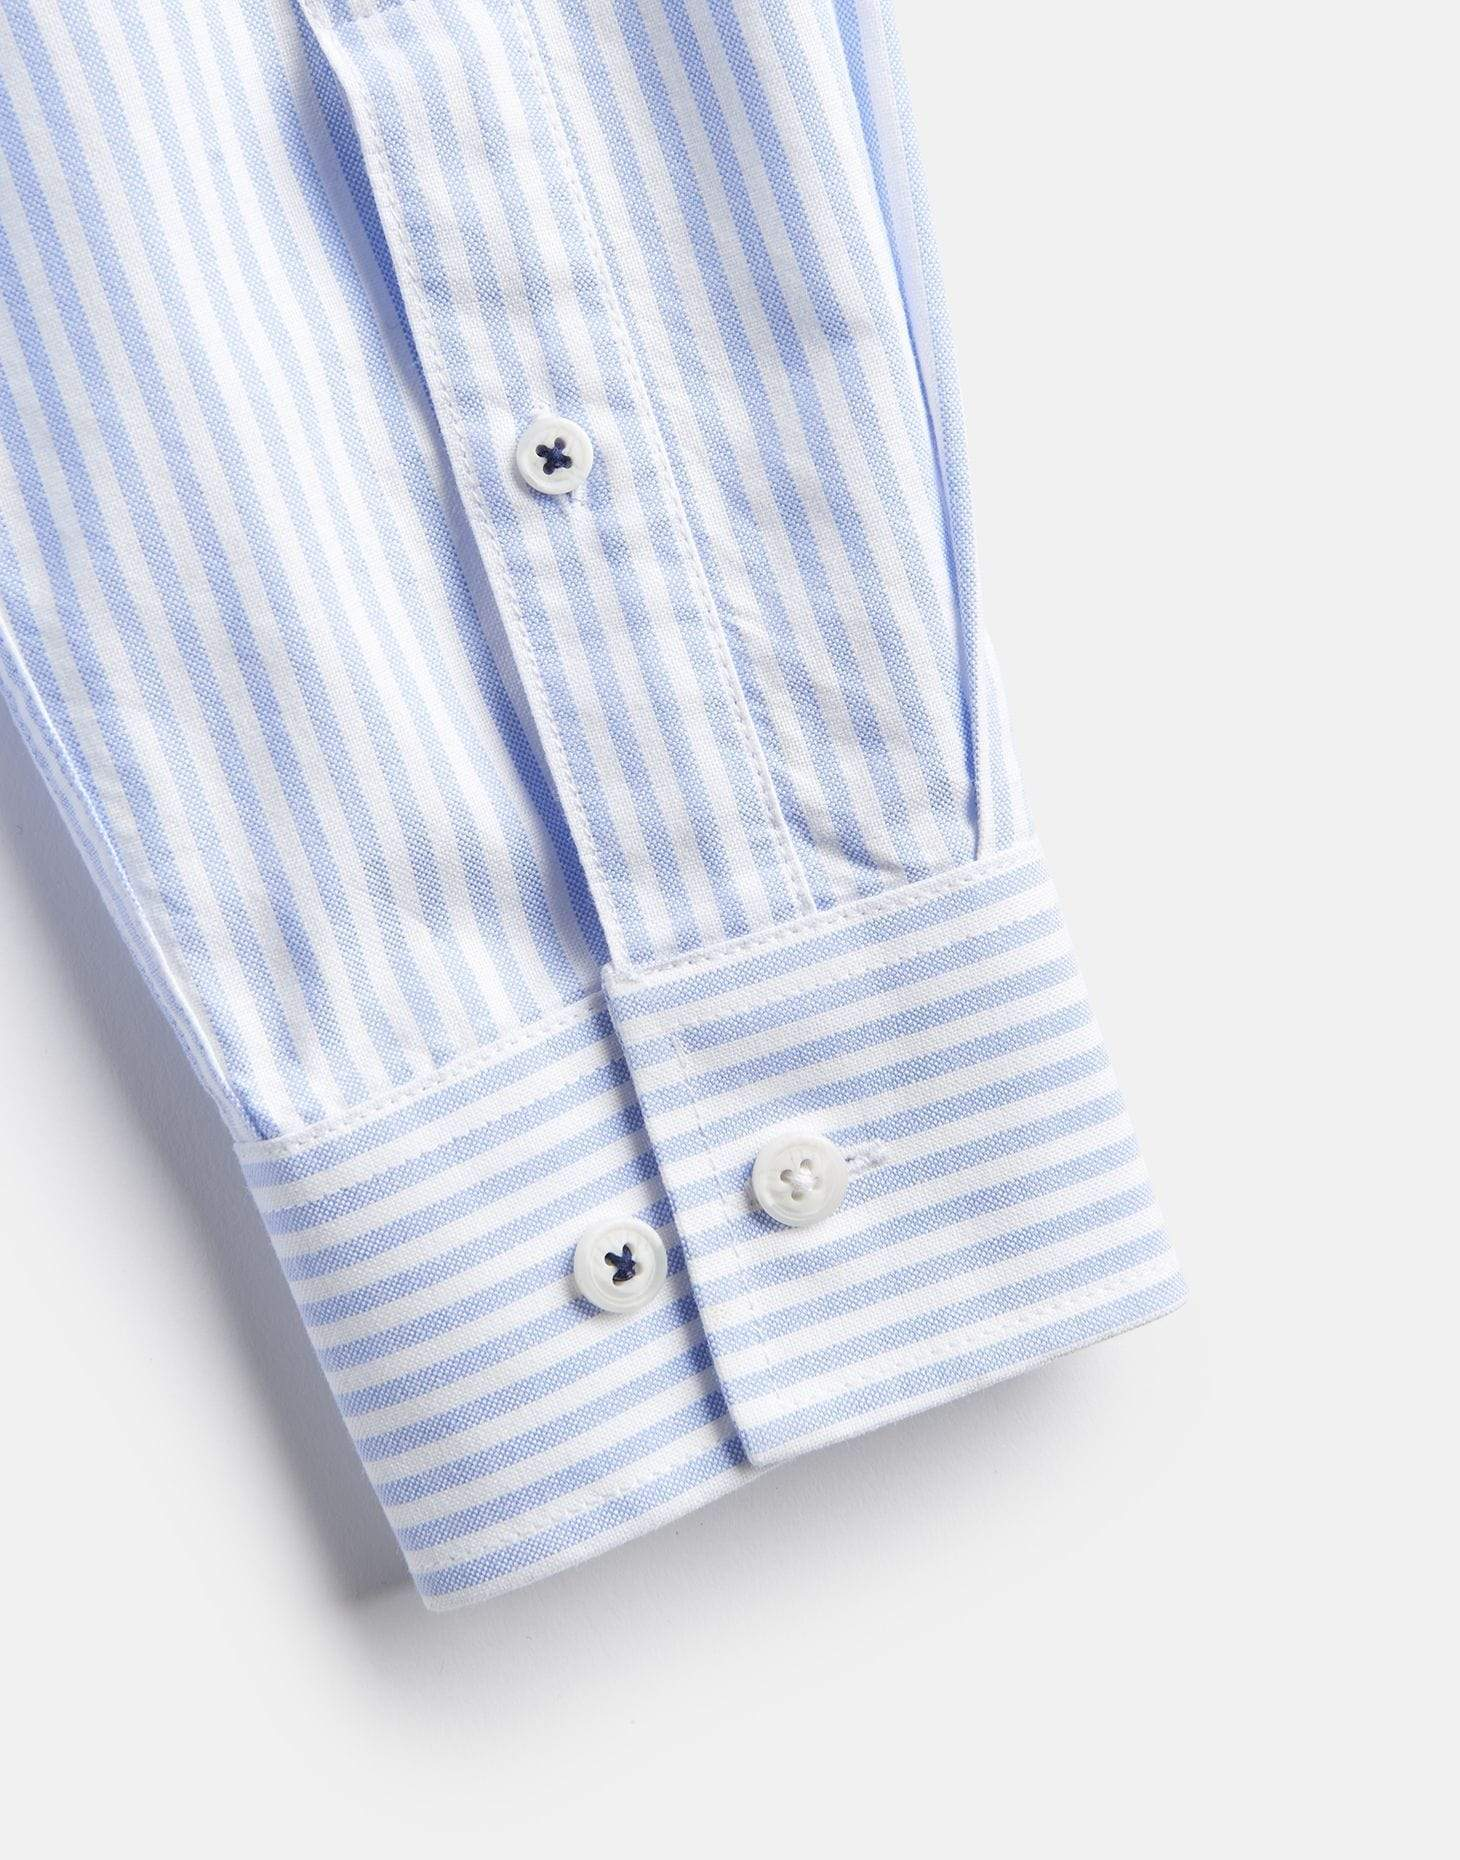 Joules The Laundered Oxford Shirt Blue Stripe Férfi ing